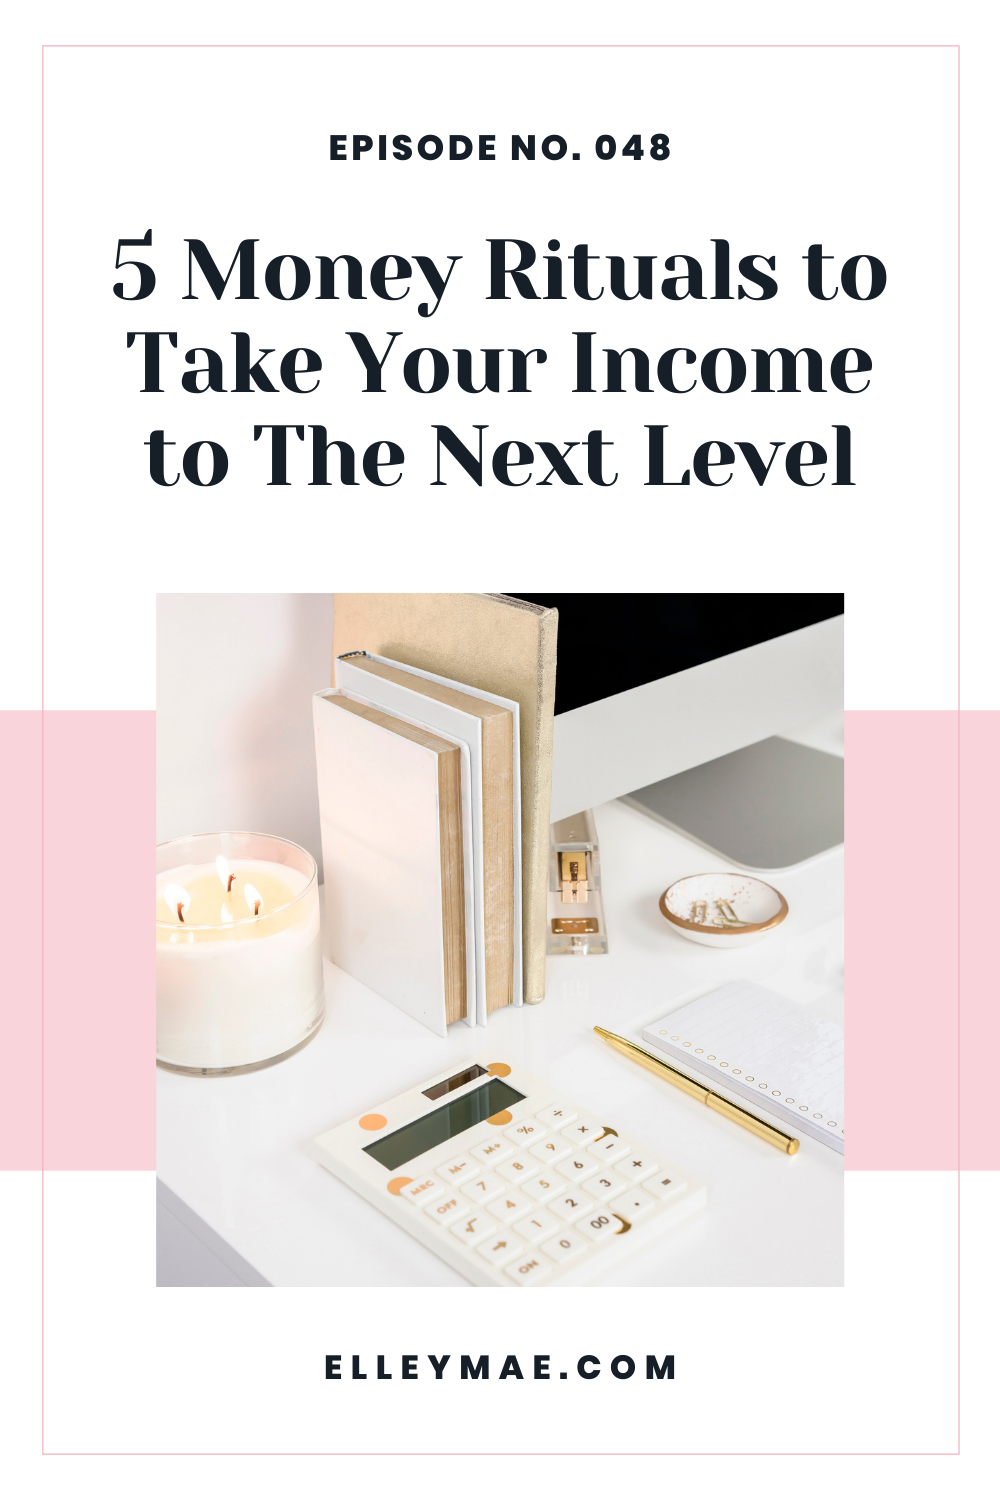 048. 5 Money Rituals to Take Your Income to The Next Level